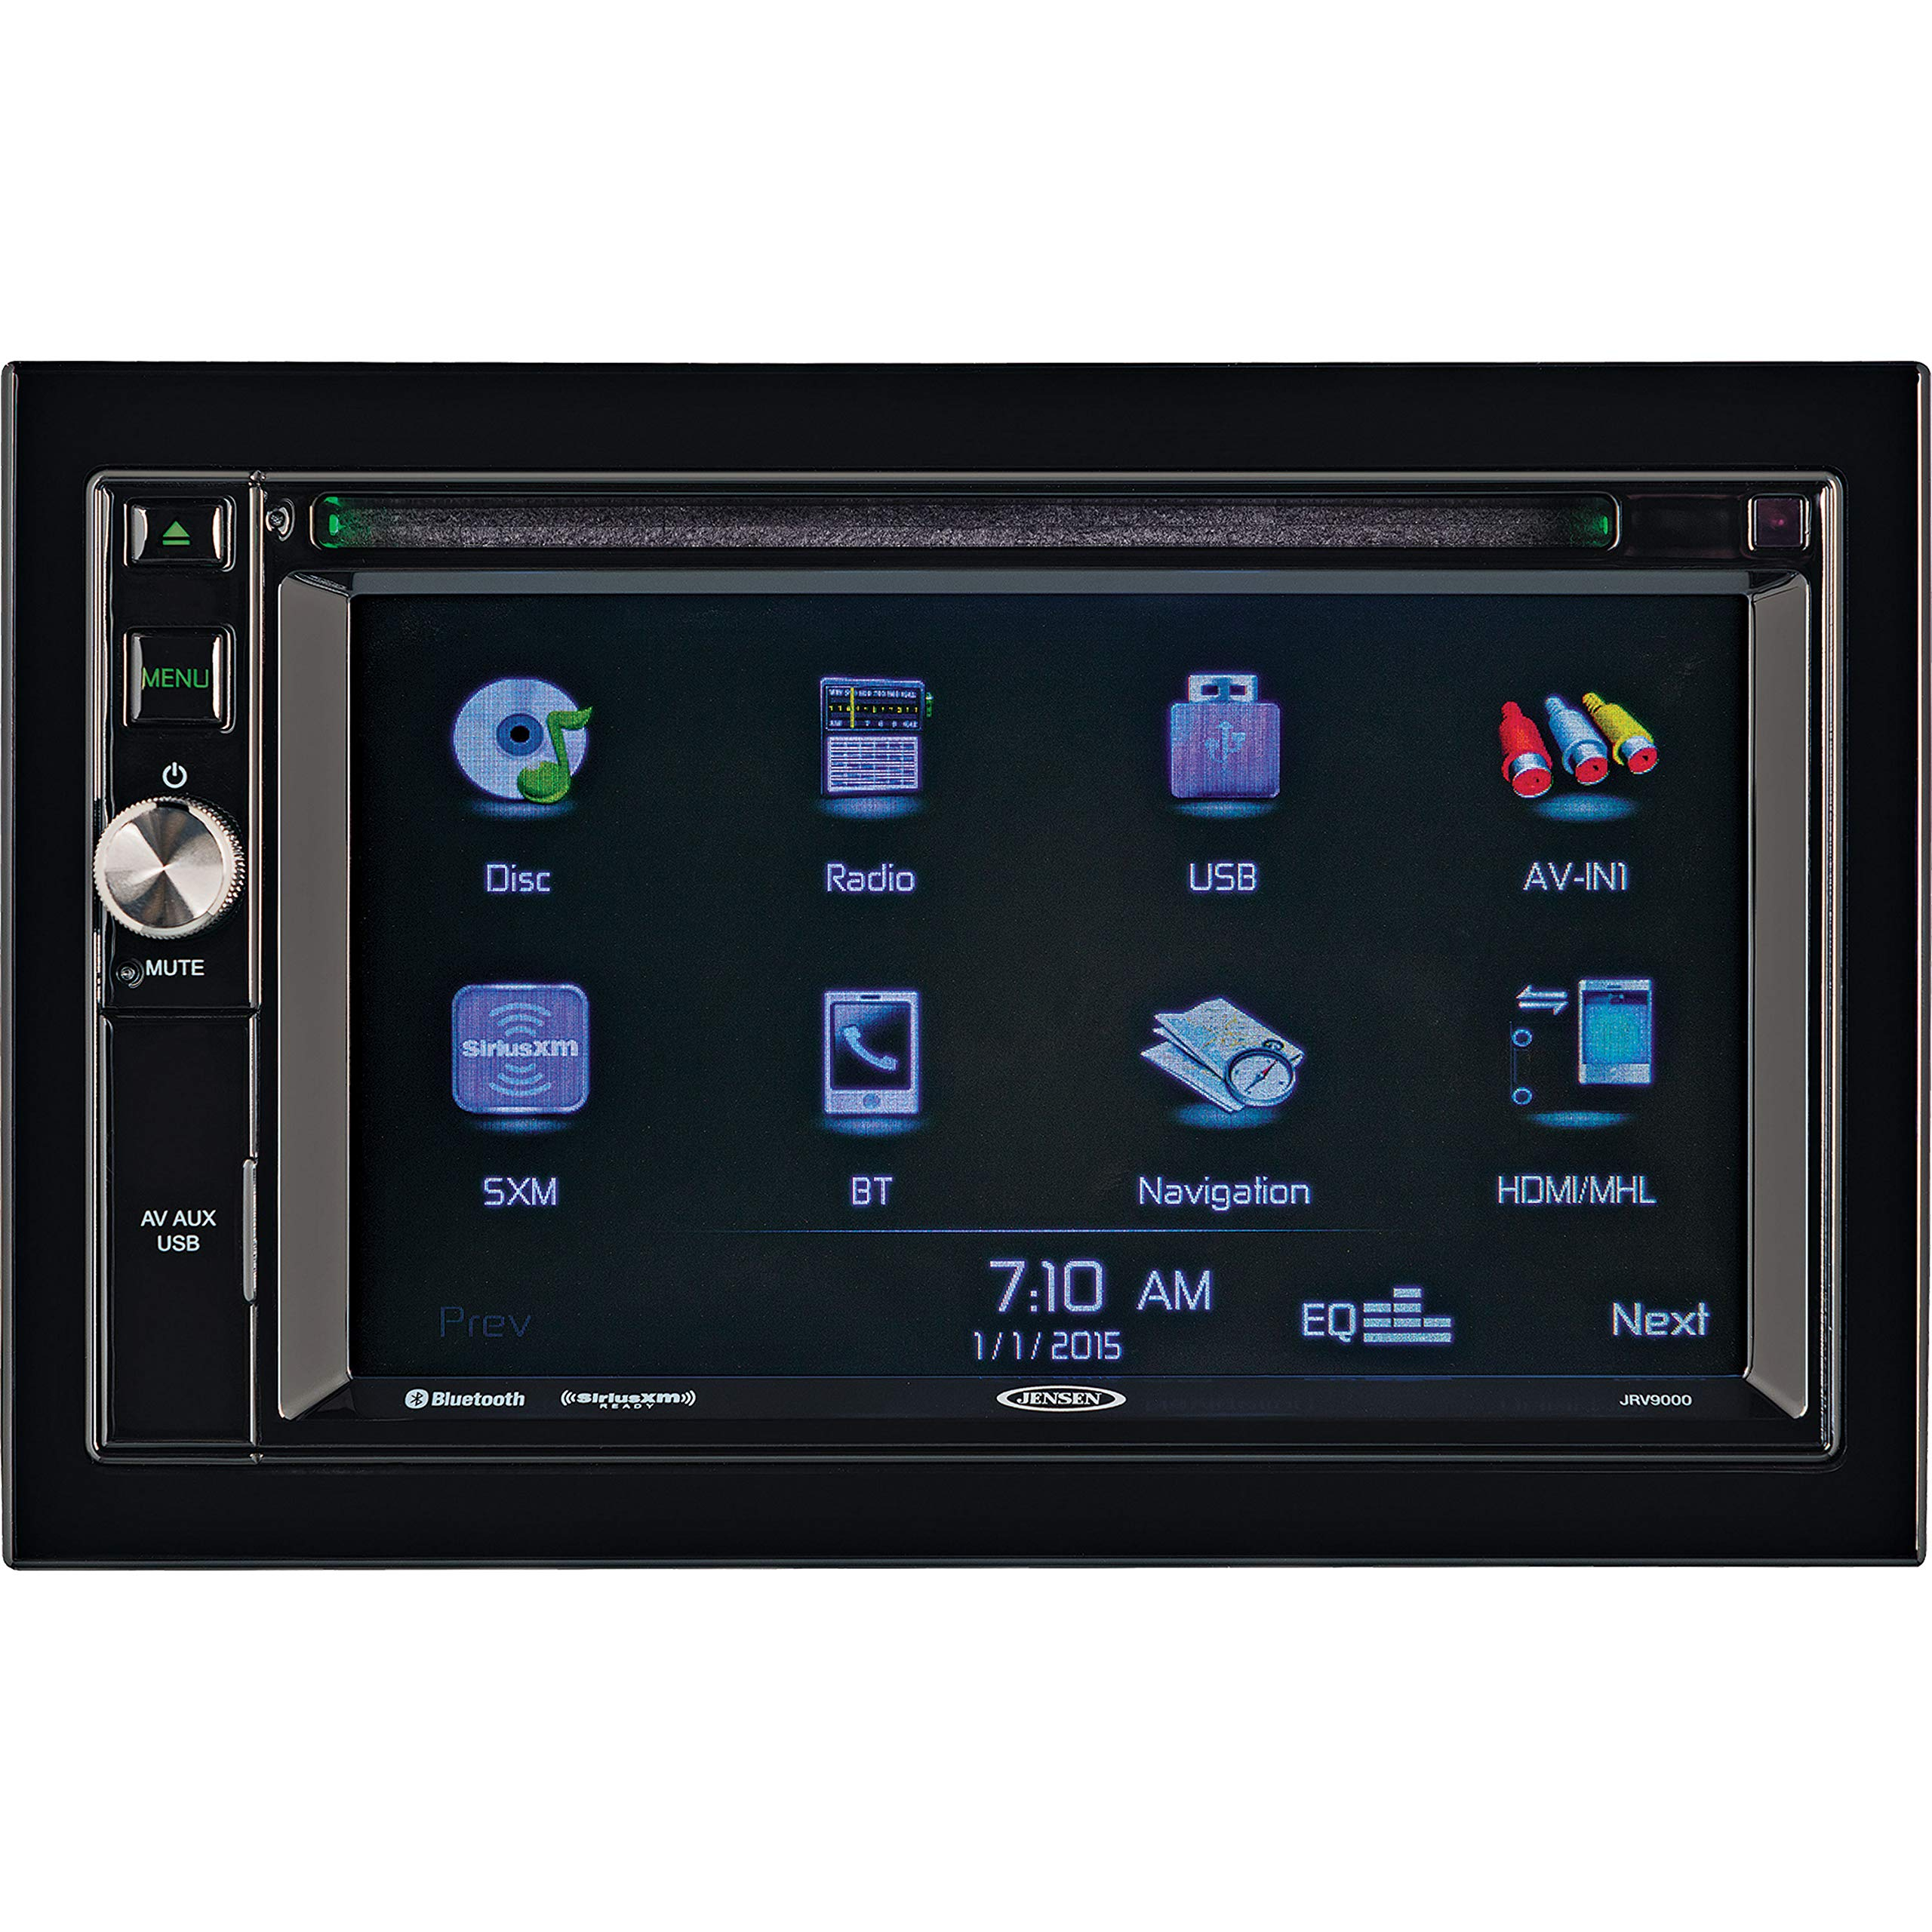 Jensen JRV9000R Touchscreen Multimedia Navigation System, Electronic AM/FM Tuner with RBDS, DVD/CD/MP3/WMA Playback, Built-in Bluetooth with External Microphone, Built-in GPS navigation and Mapping by Jensen